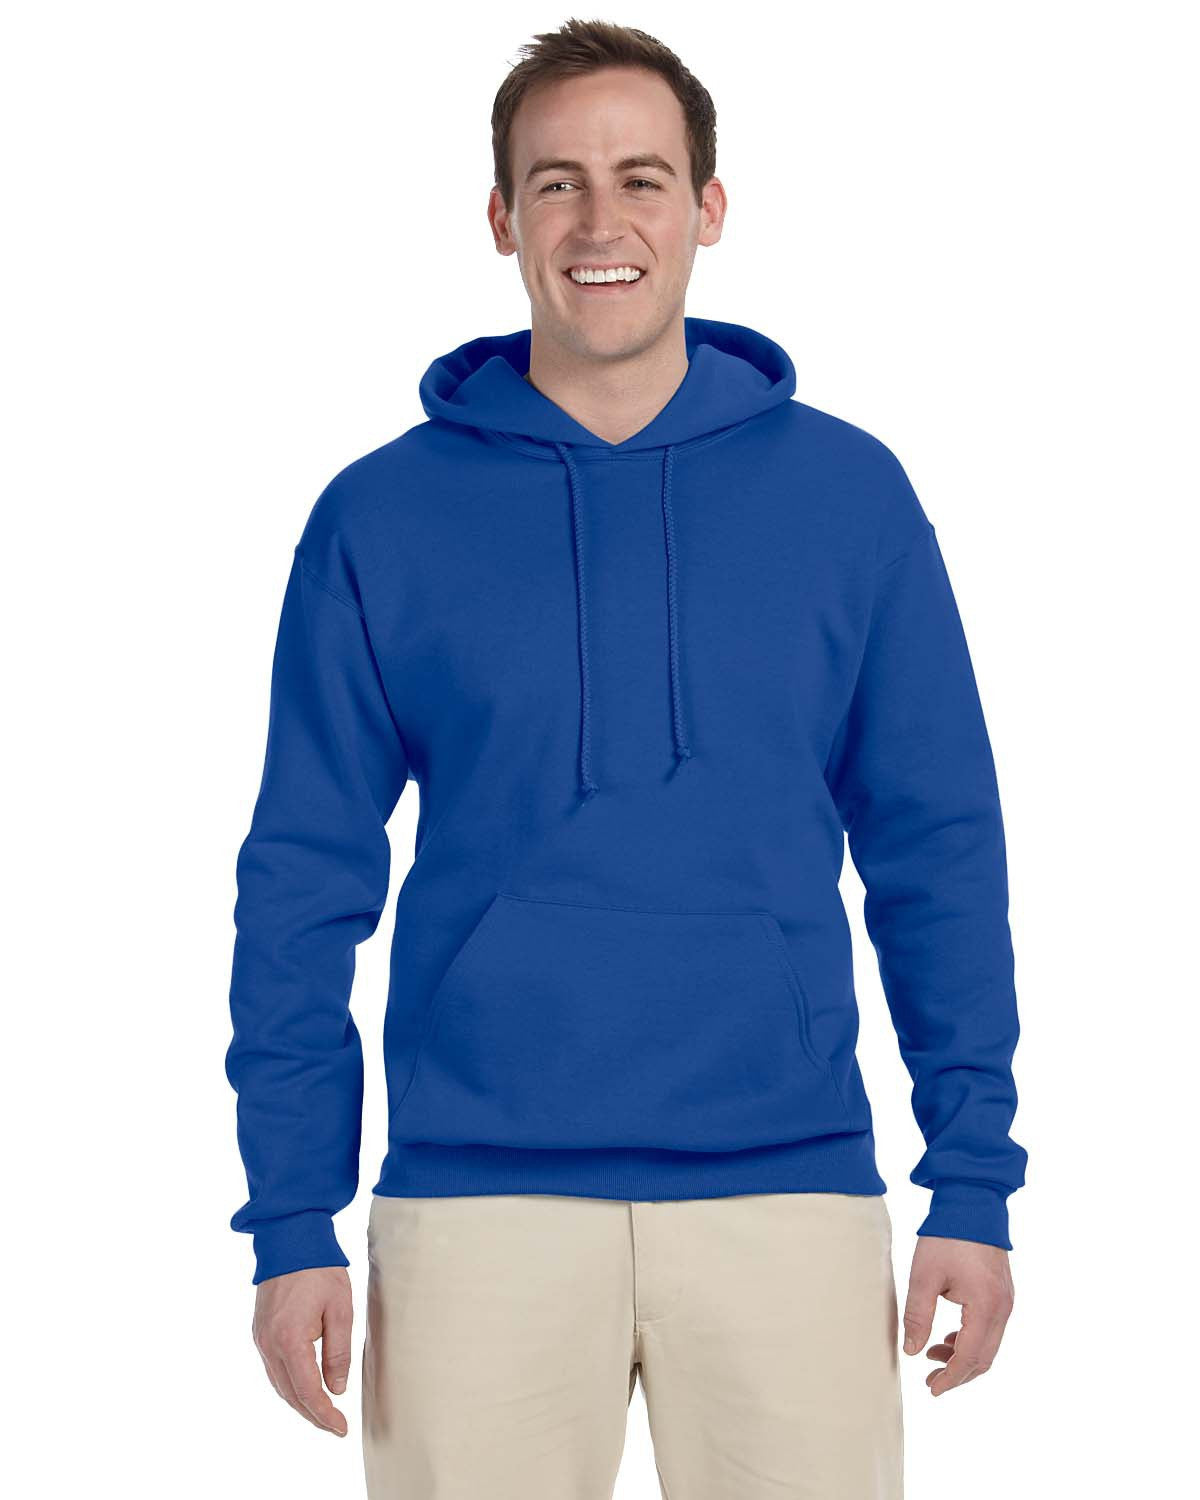 VLL Majors Dodgers OPTIONAL Jerzees 8 oz. NuBlend® Fleece Pullover Hood - All Sizes Royal